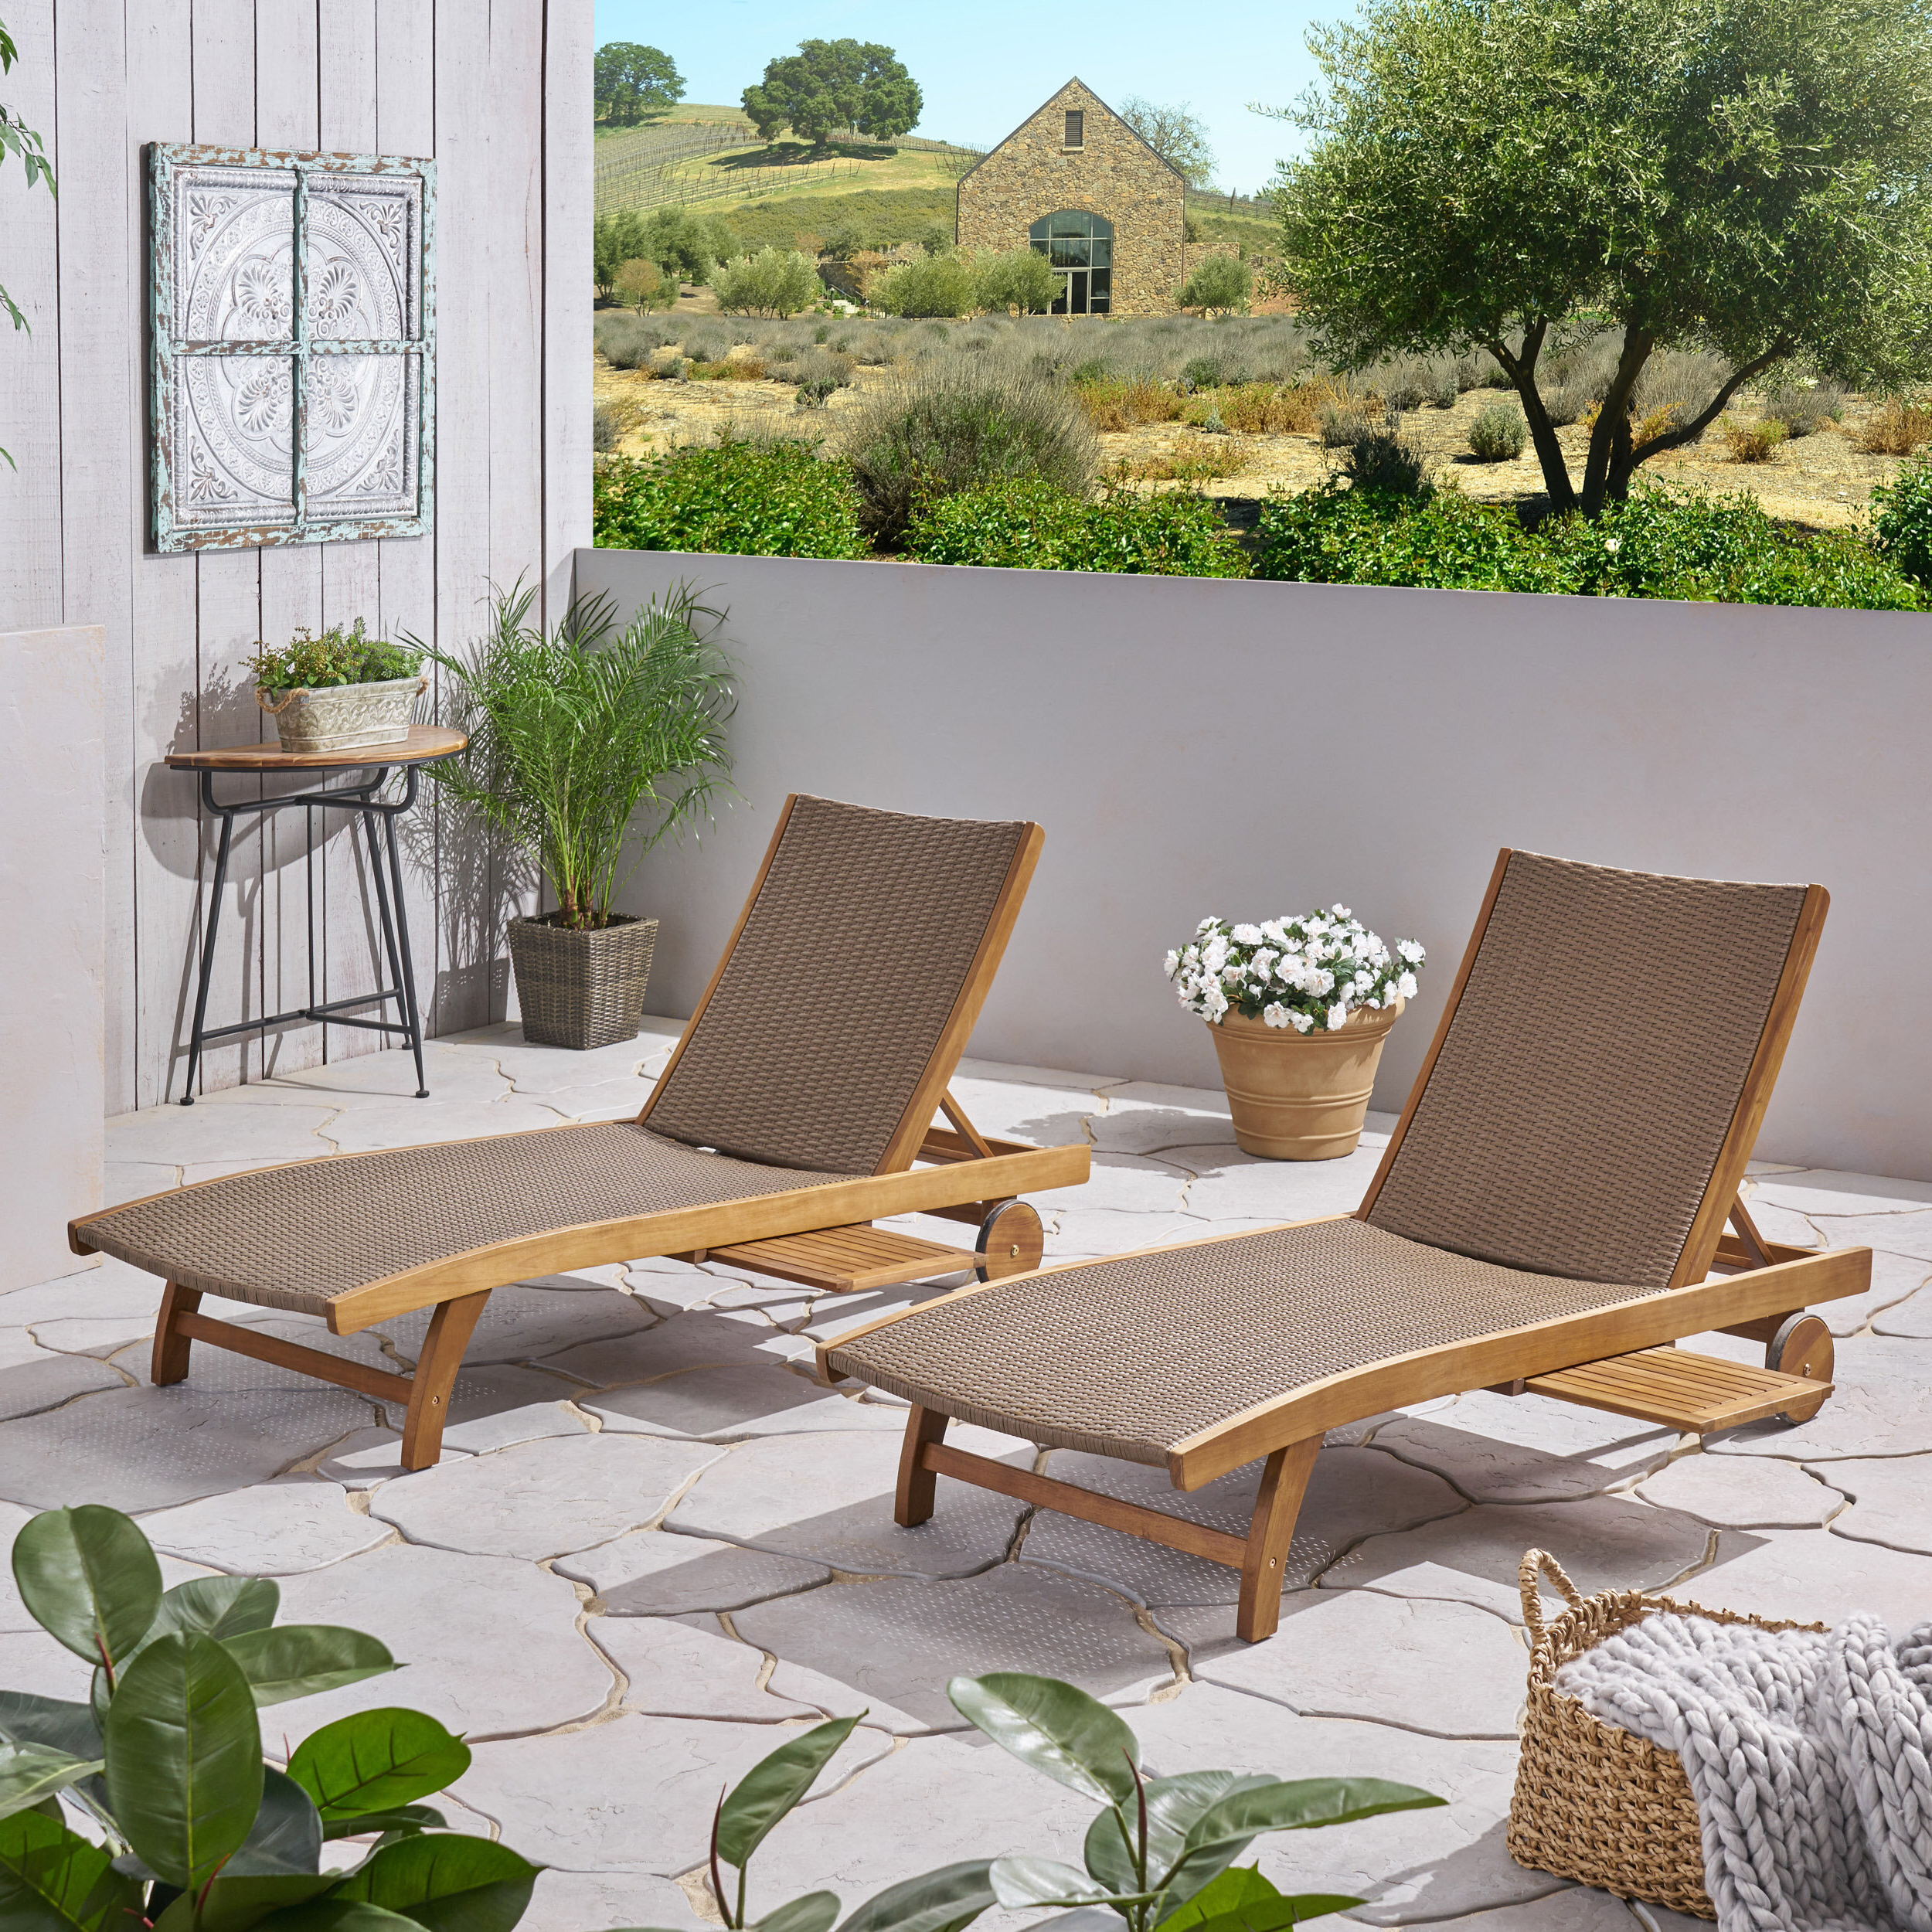 Most Popular Cleghorn Reclining Chaise Lounge For Outdoor Rustic Acacia Wood Chaise Lounges With Wicker Seats (View 11 of 25)